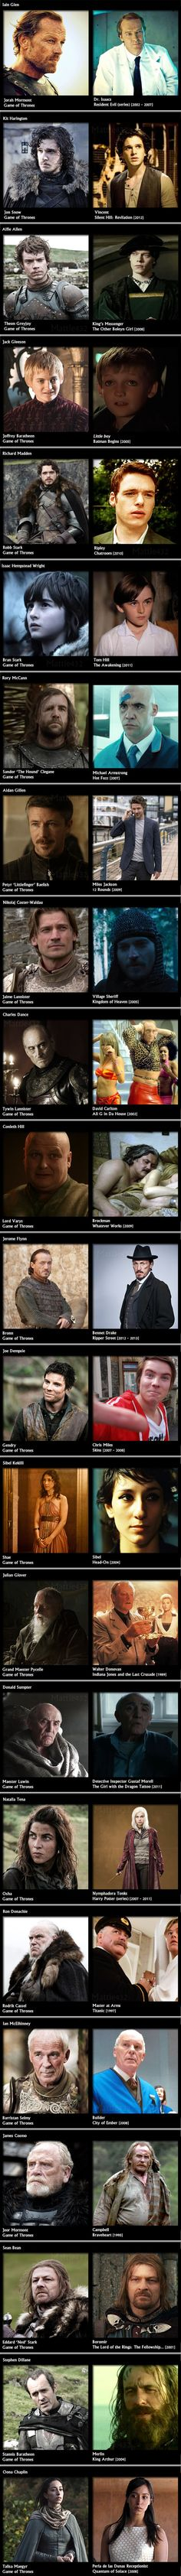 A Comprehensive Chart of 'Game of Thrones' Actors & Actresses in Previous Roles